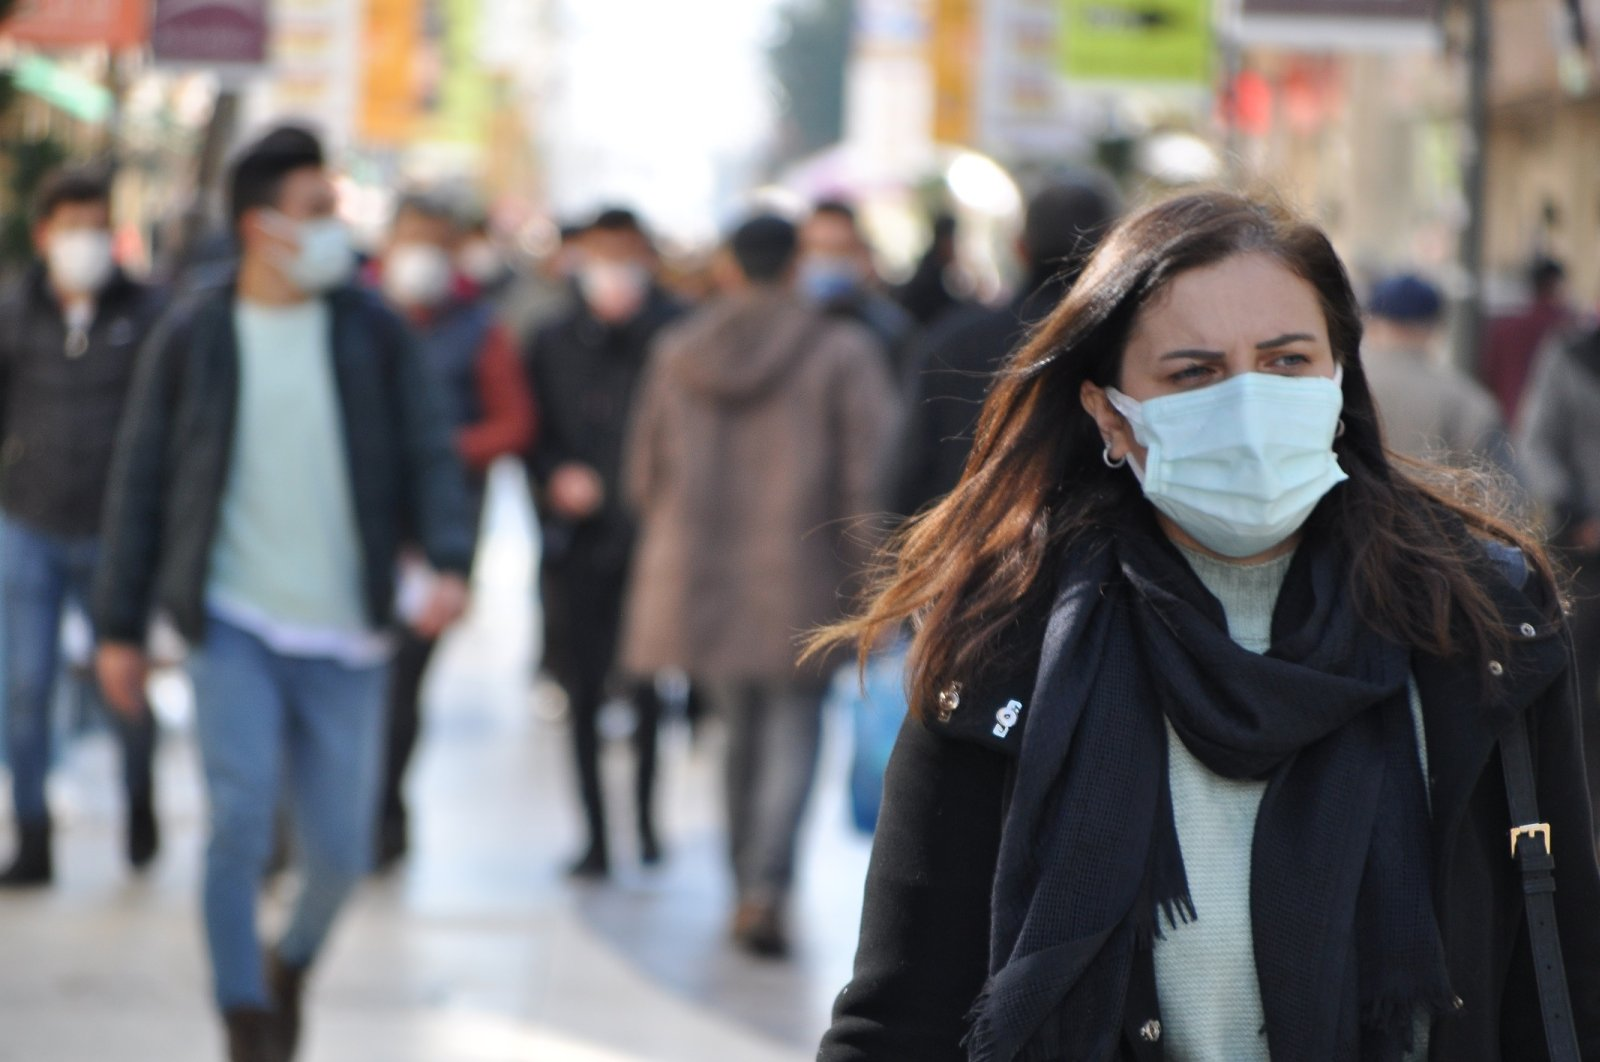 People wearing protective masks against the virus walk on a street in Ordu, northern Turkey, Feb. 19, 2021. (DHA Photo)